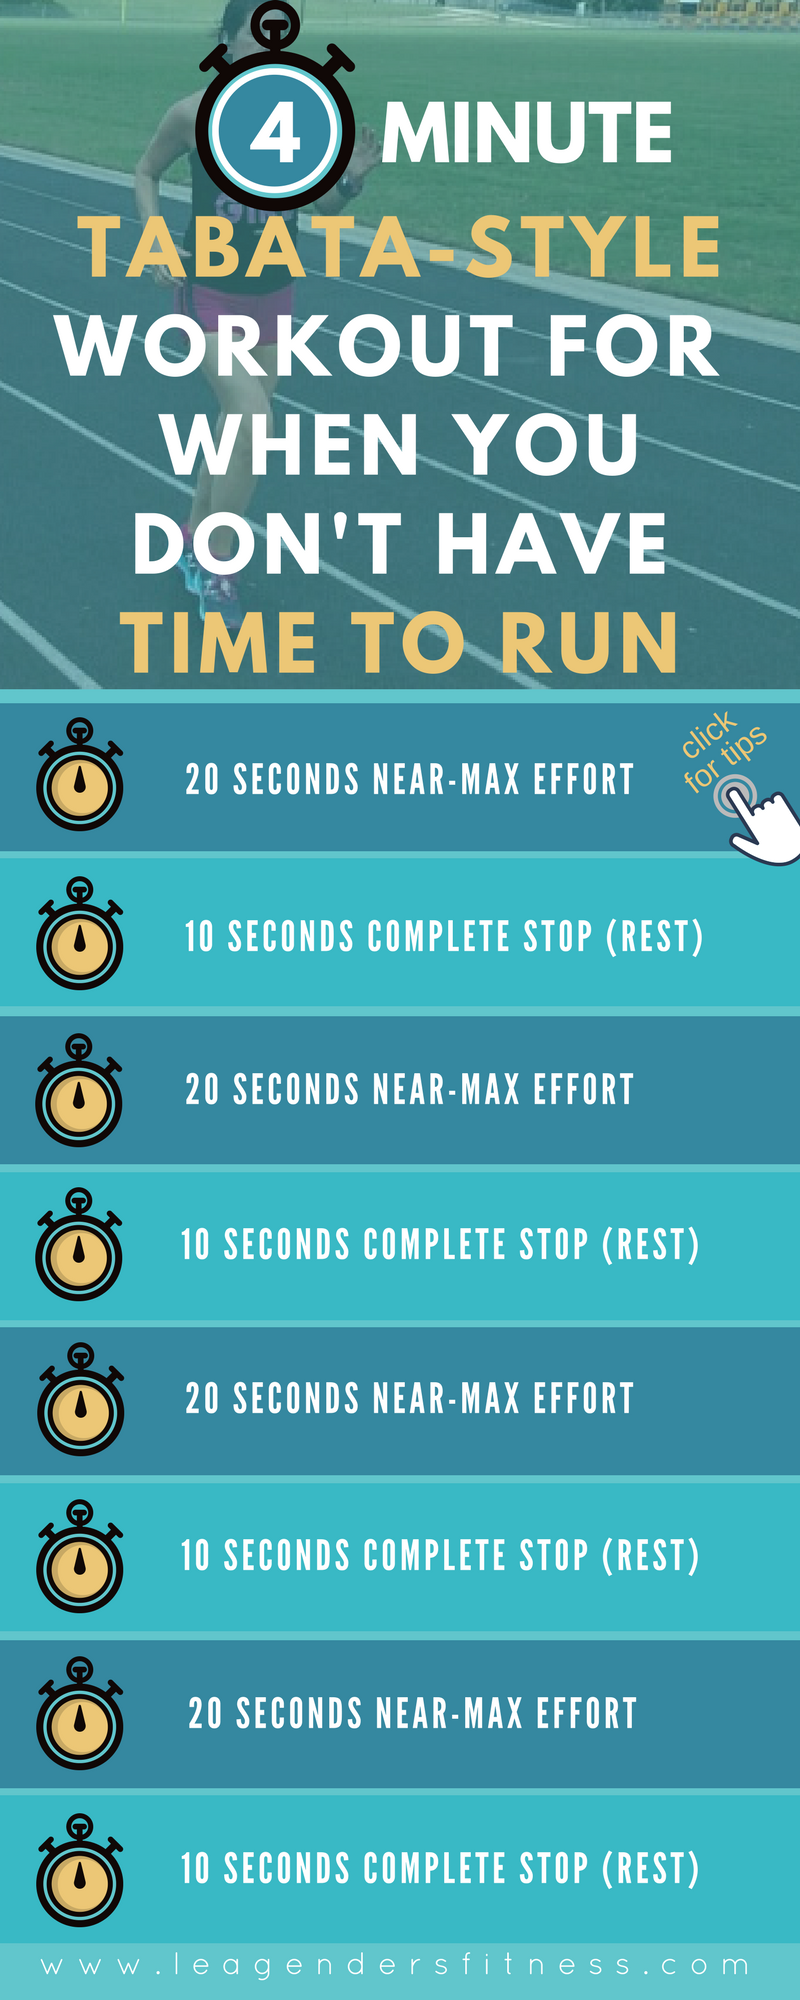 four minute tabata-style workout for when you don't have time to run. save to Pinterest for later.